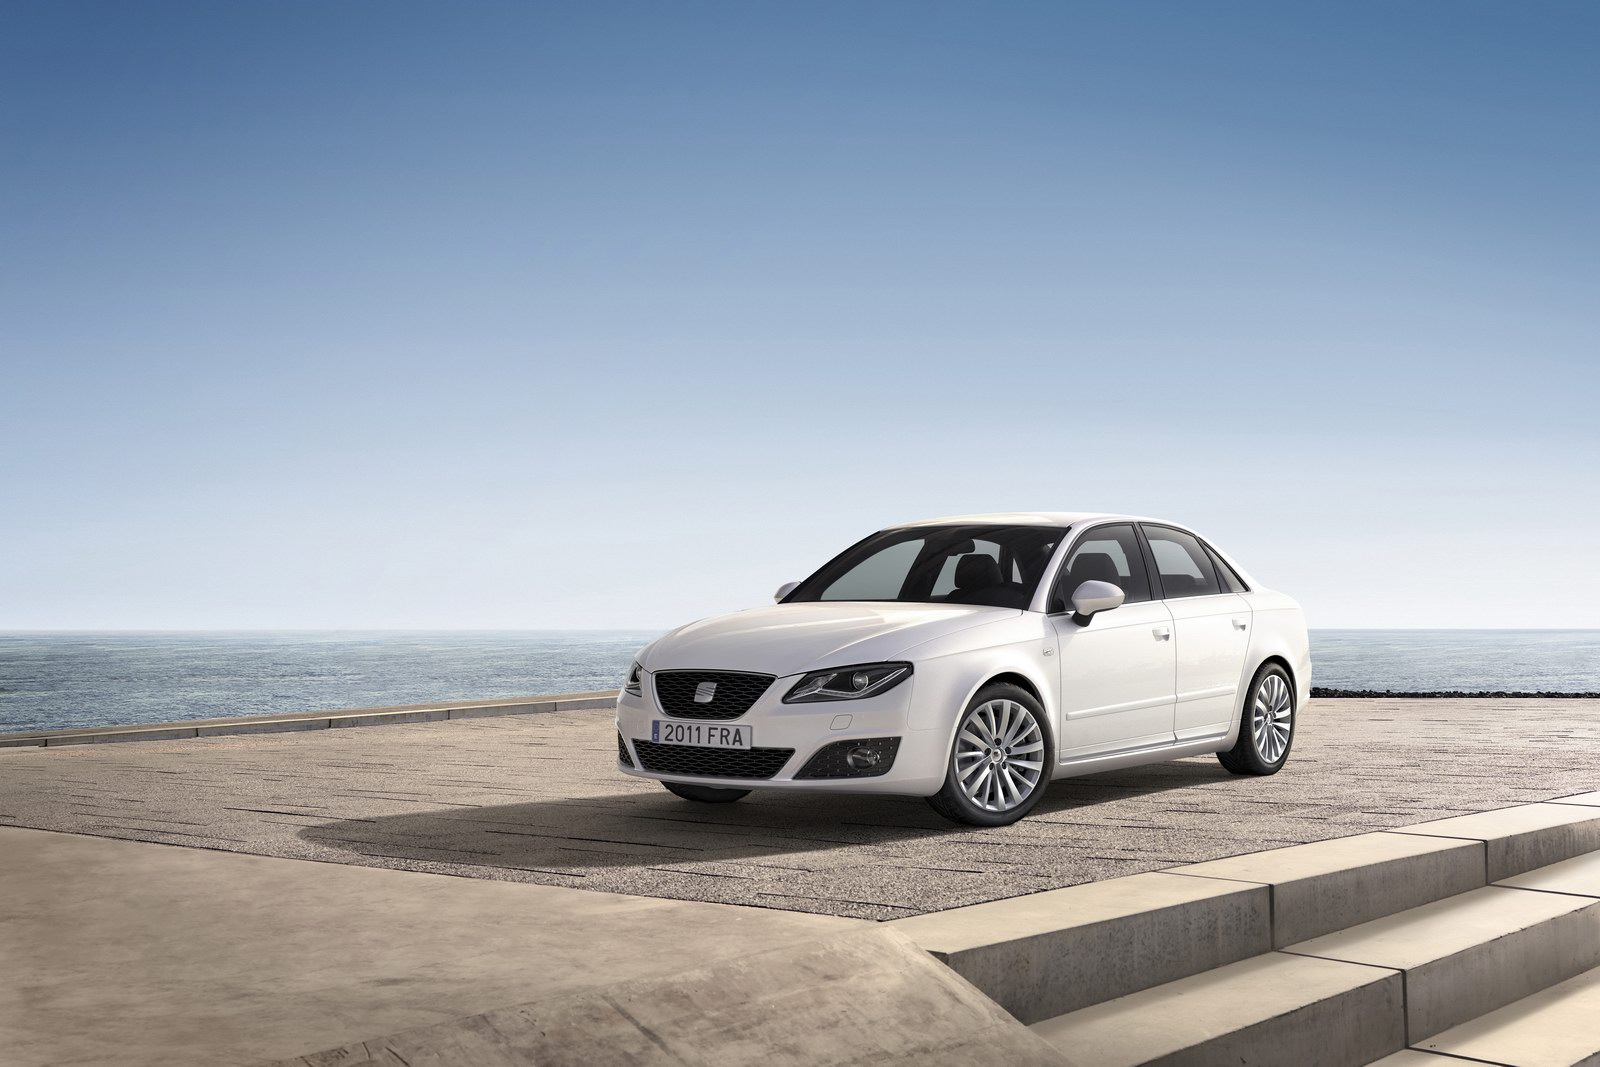 2012 sEAT eXEO fl 2 Return of the 2012 Exeo Series